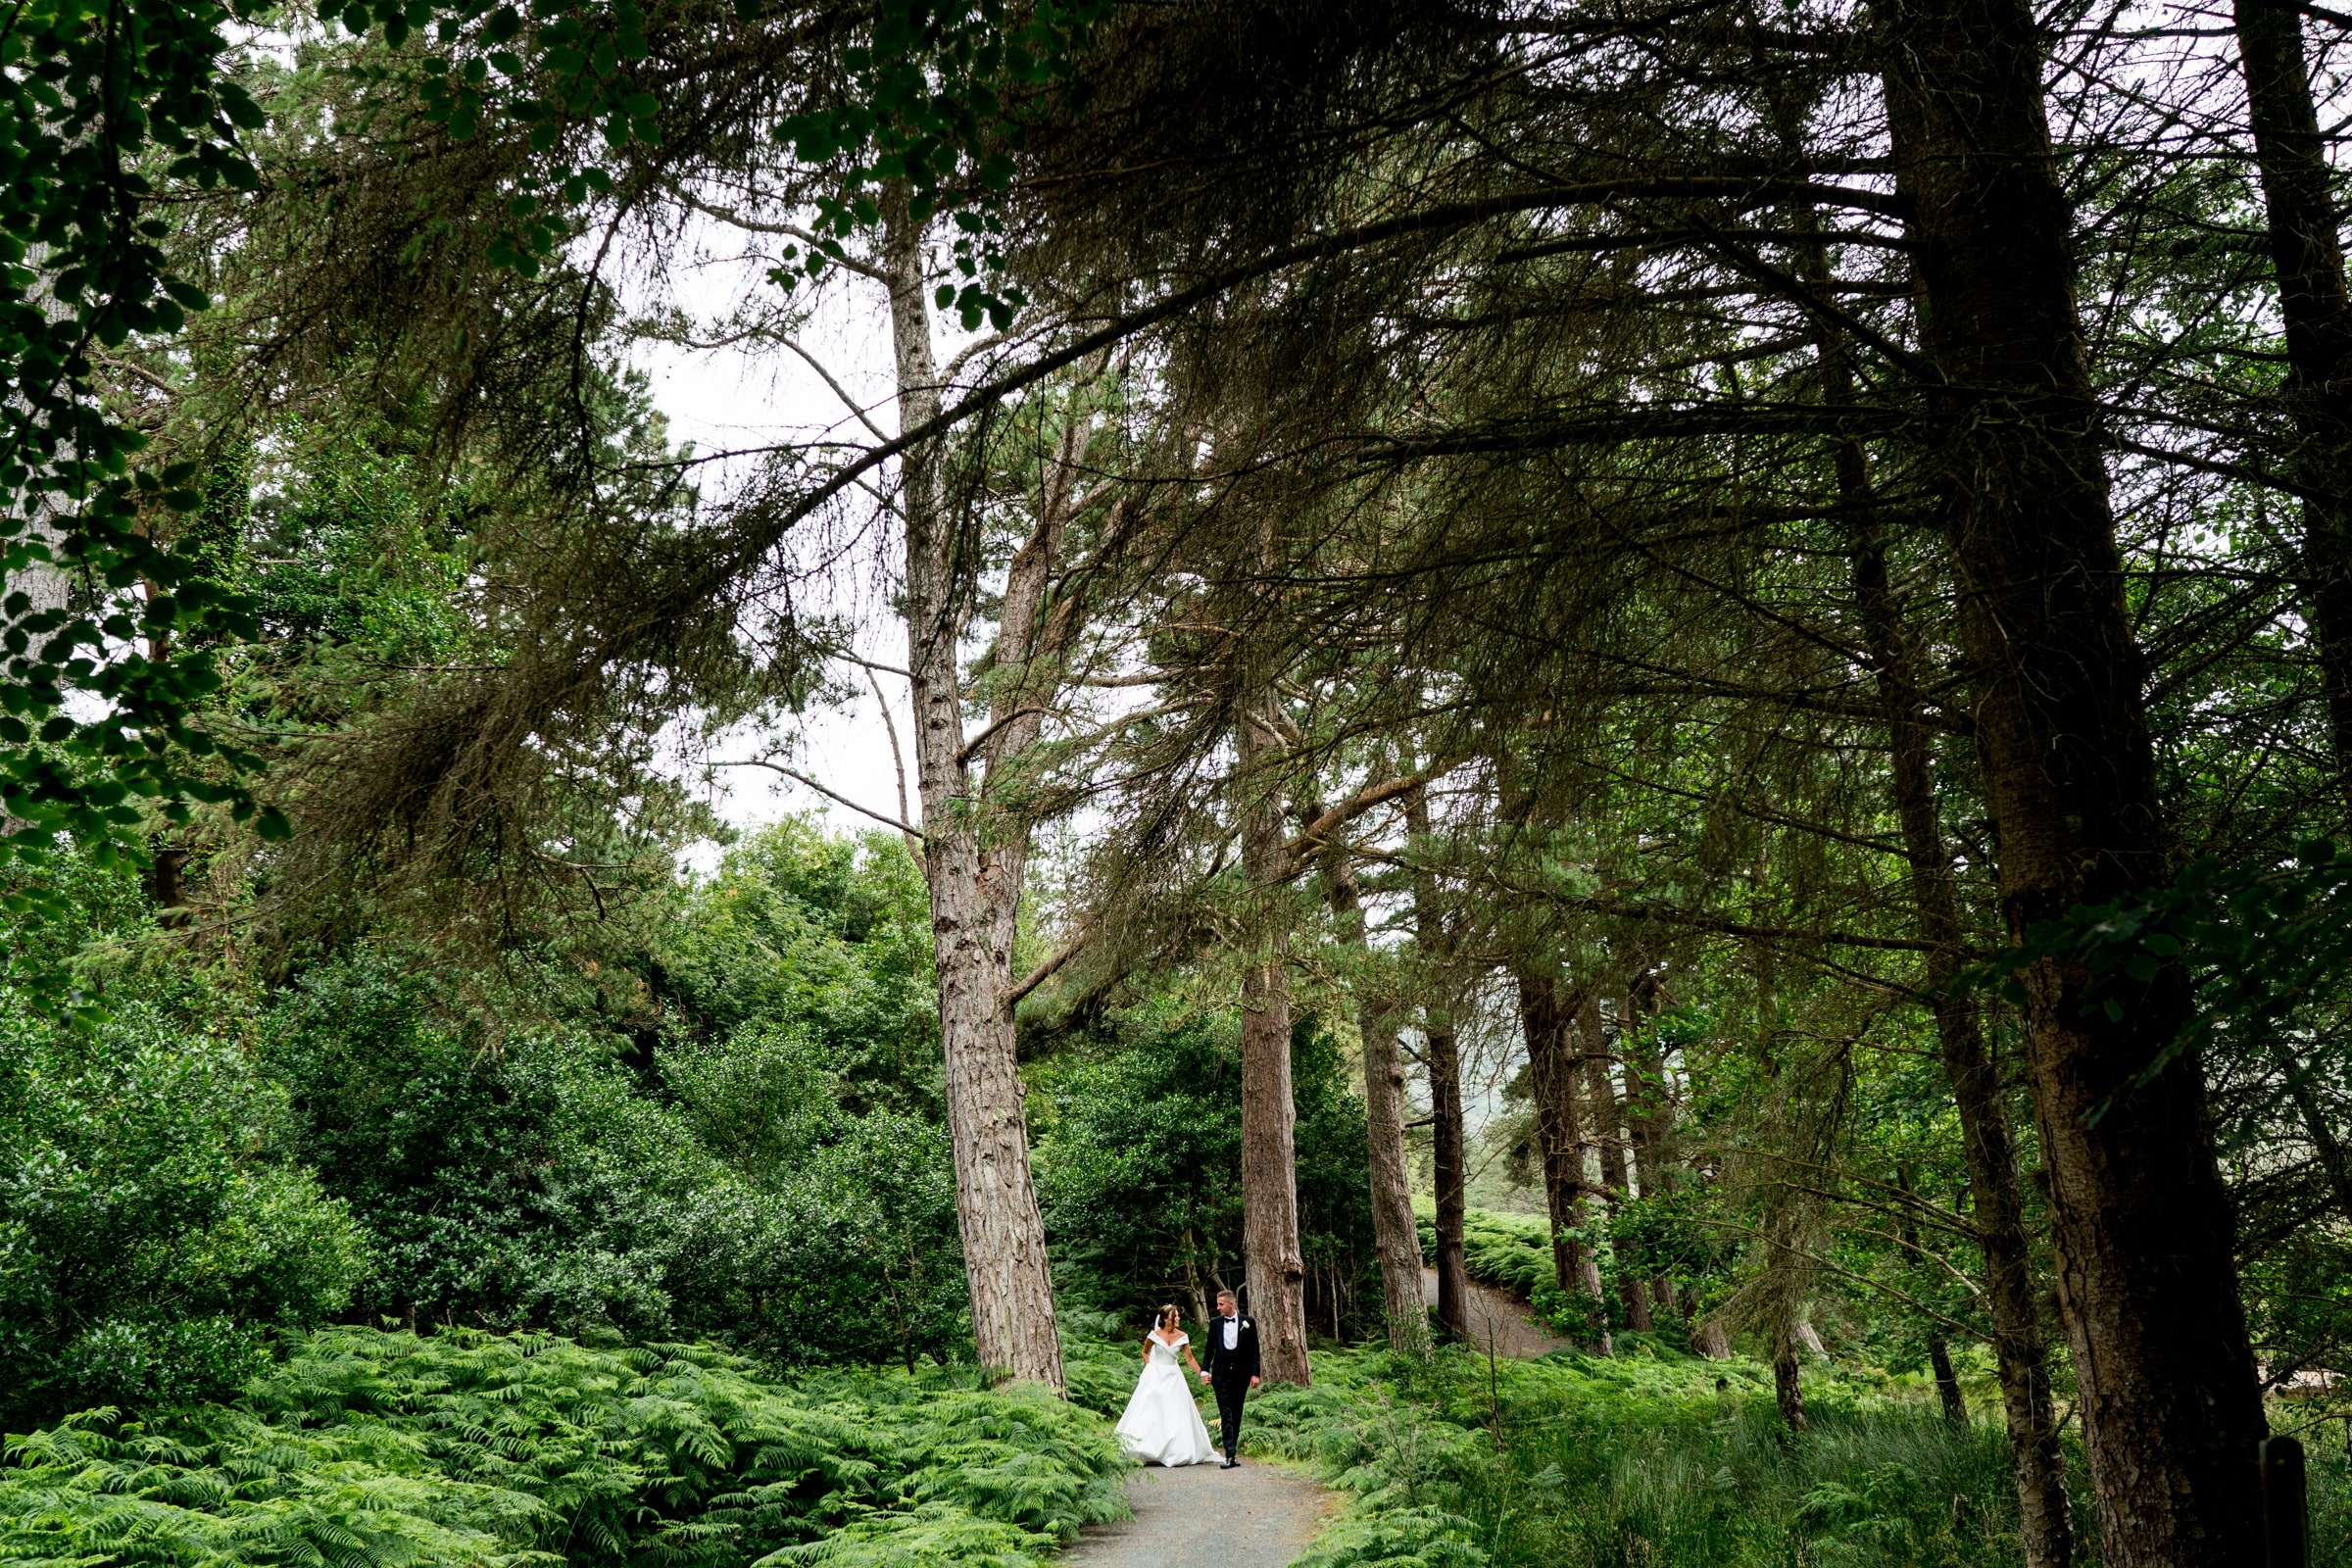 bride and groom walking through a forest in Glenveagh National Park, silver Tassie hotel wedding, donegal wedding venue, photographer donegal, bride and groom in the Poisoned Glen with Mount Errigal in the background, photo by Paul McGinty from Ghorm Studio photography Lough Eske.